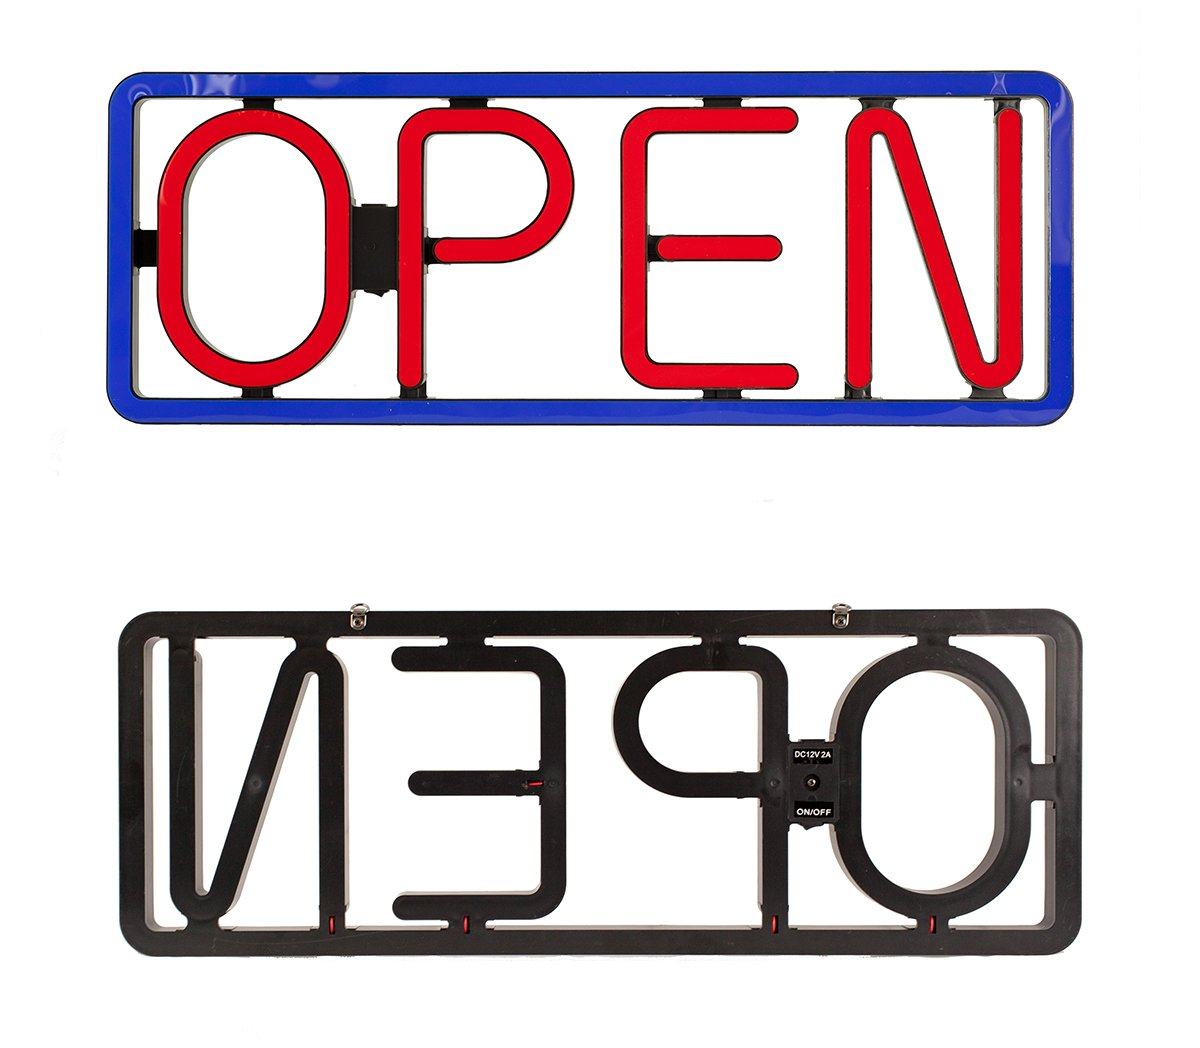 Led open signs neon styles large letter display vivid bright color big rectangular for shop store bar cafe restaurant beer salon business97 led amazon